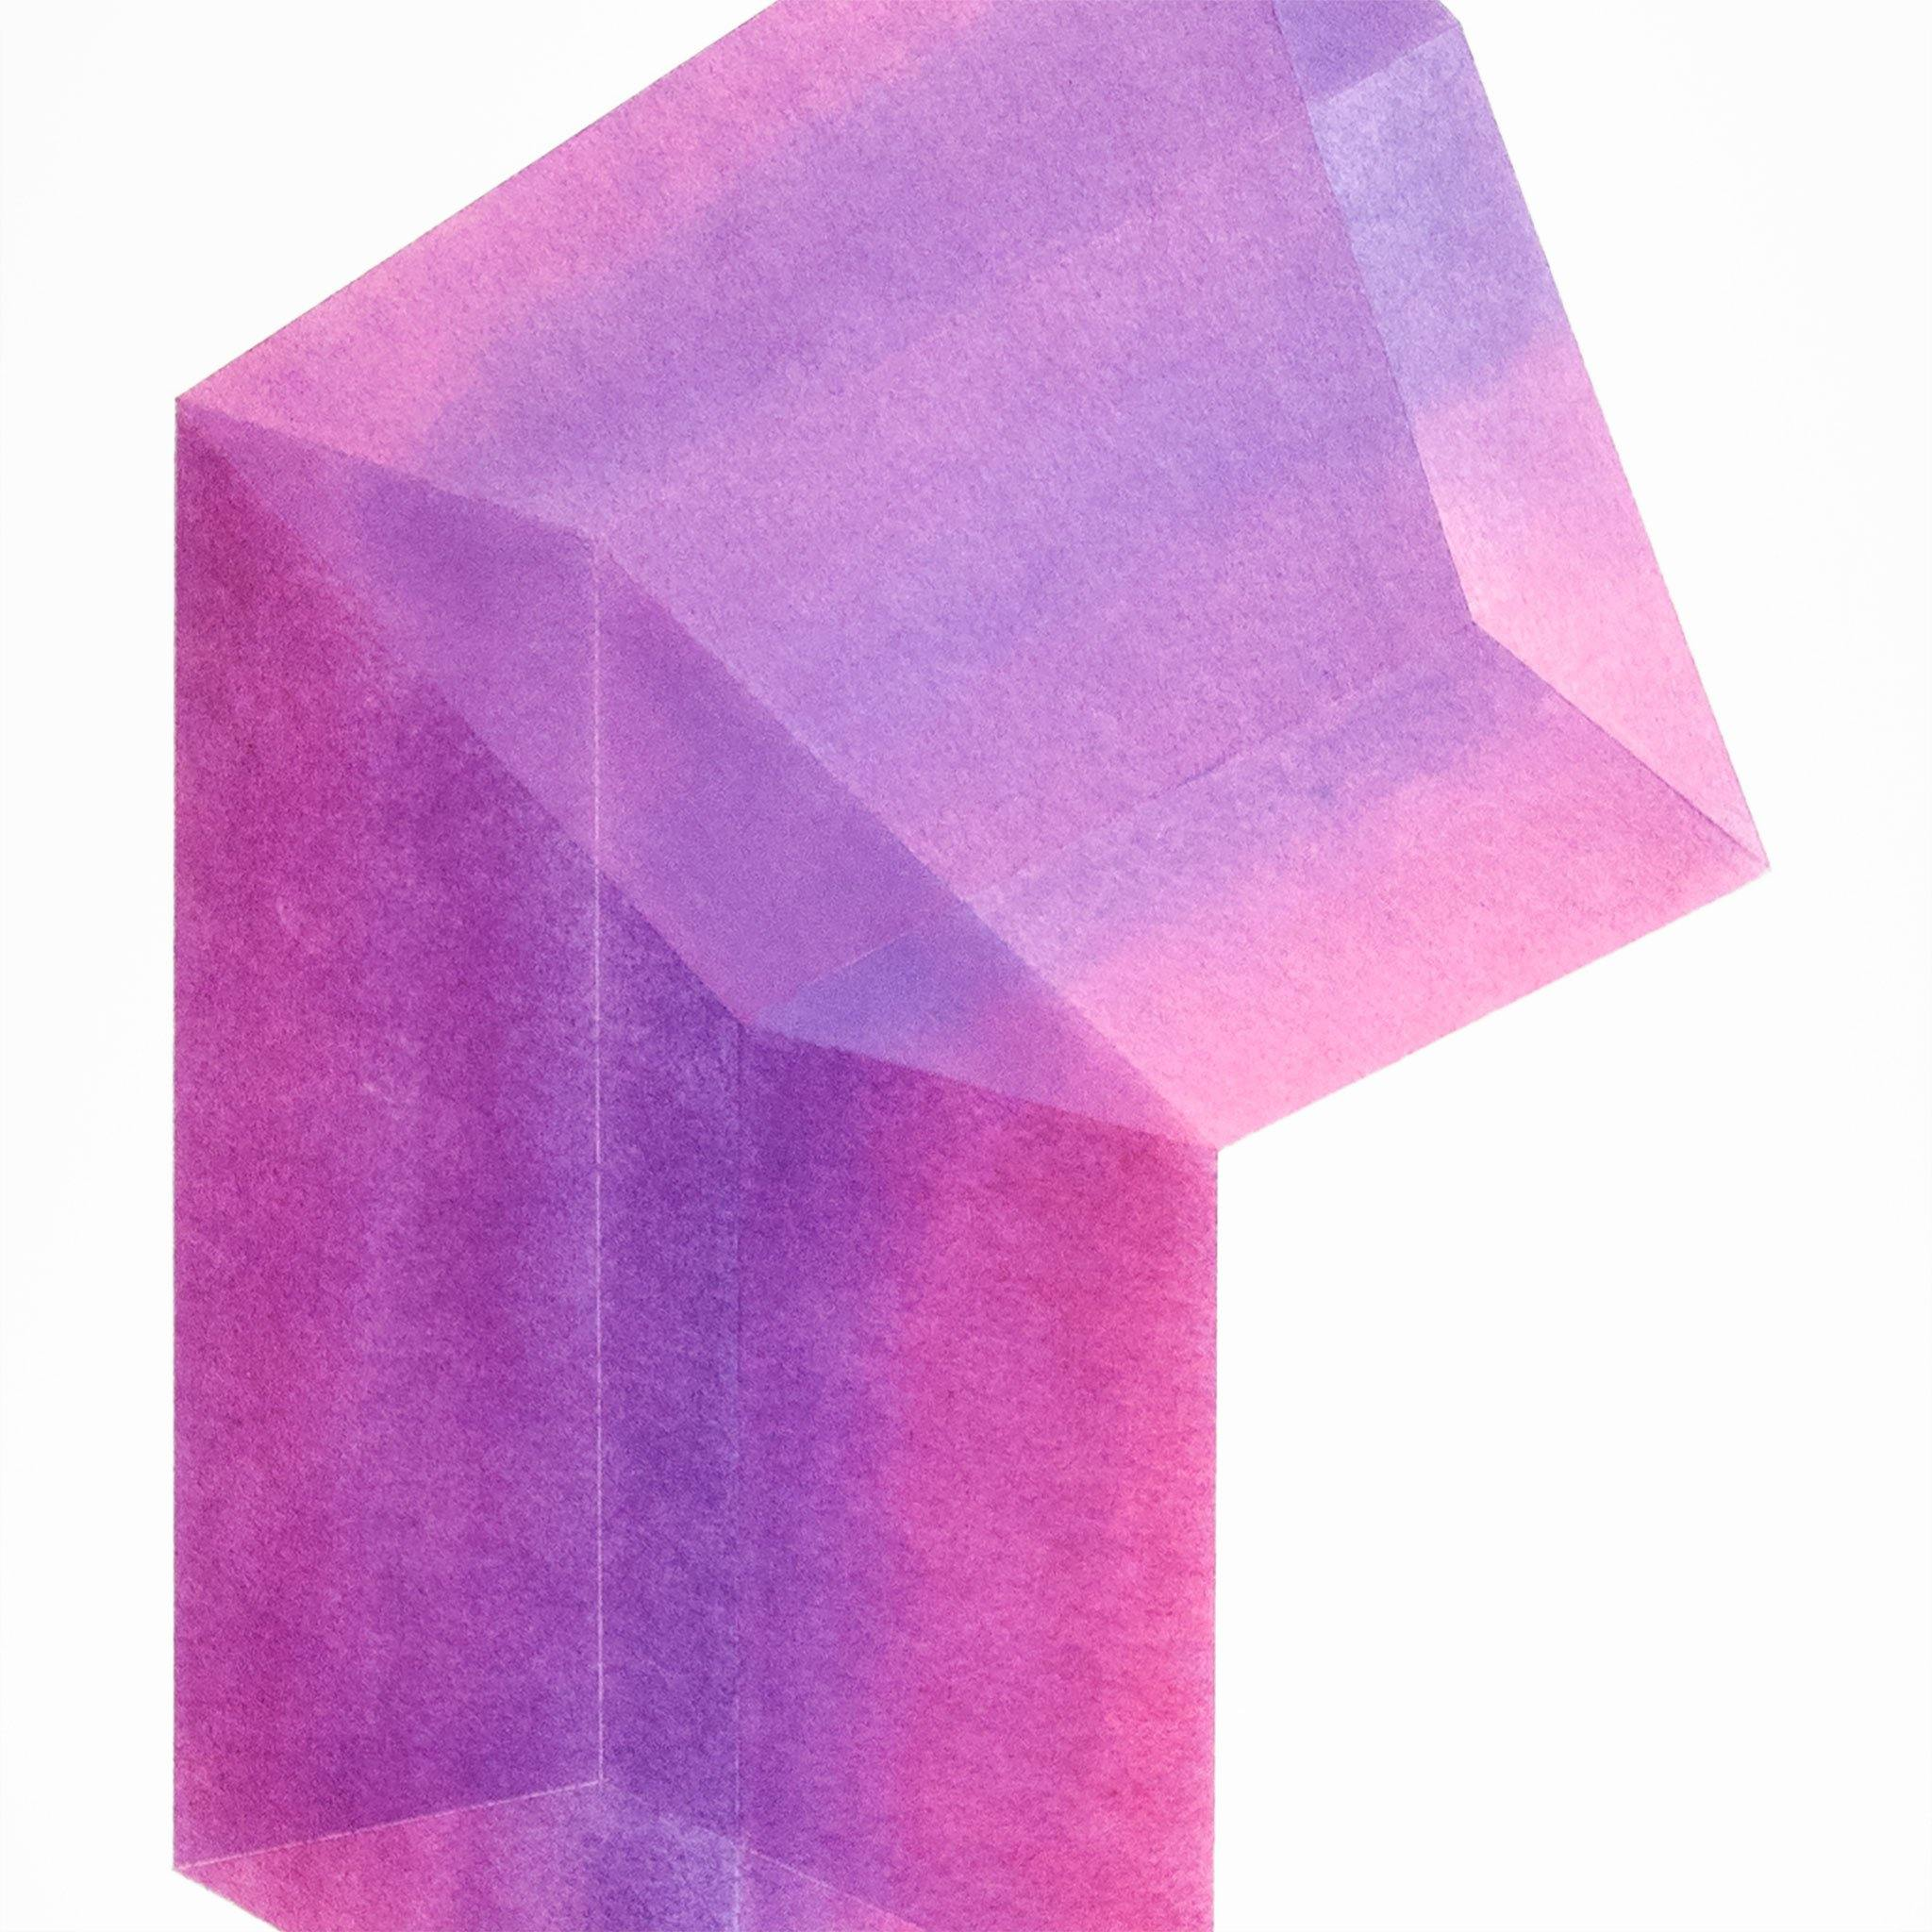 Accidental Happiness (vertical) Purple + Magenta Gradient